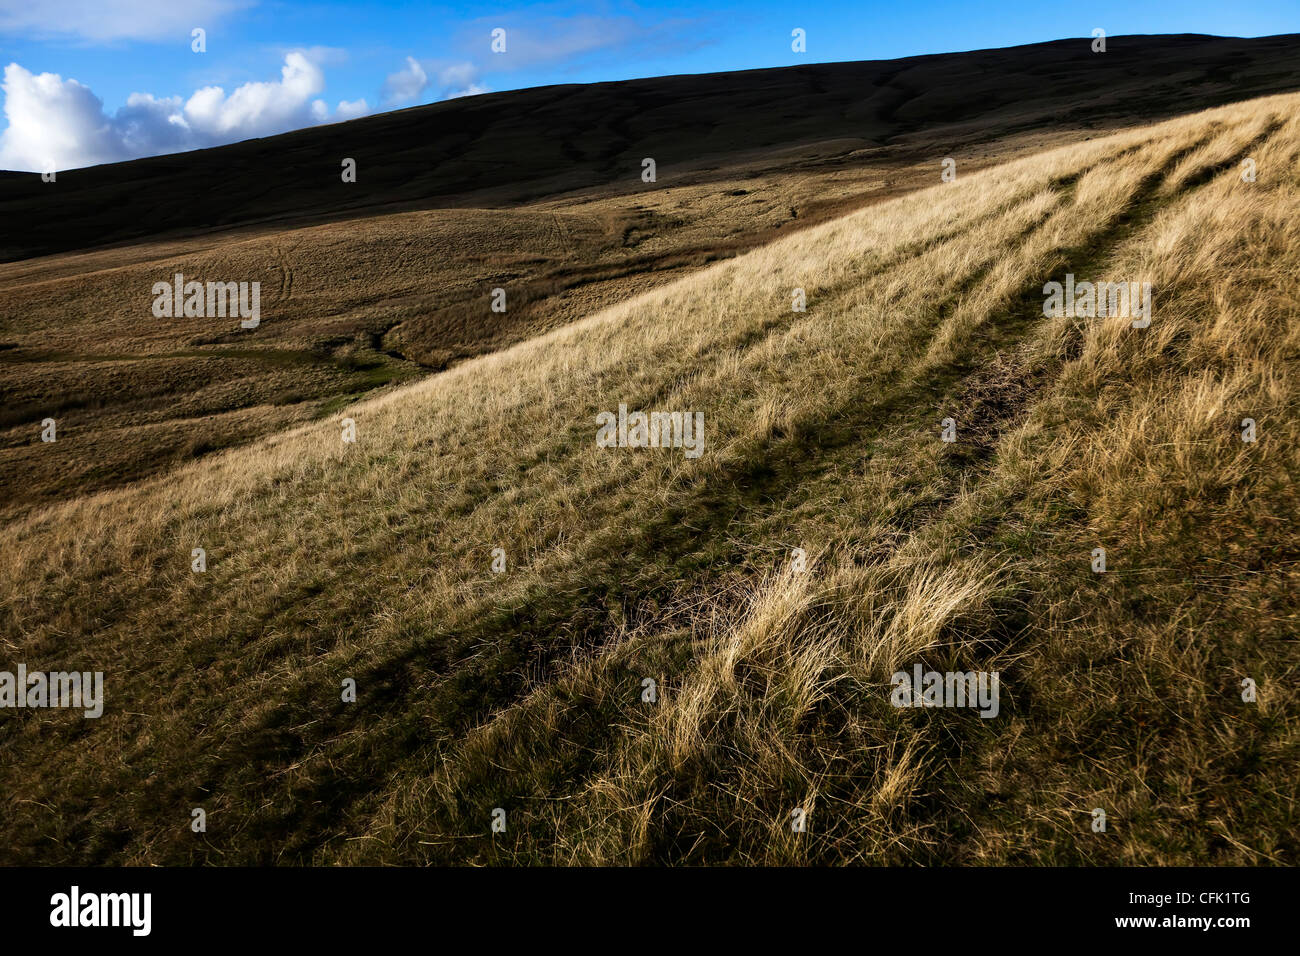 Old vehicle tracks across moorland, Black Mountains, Brecon Beacons National Park, Wales, UK - Stock Image